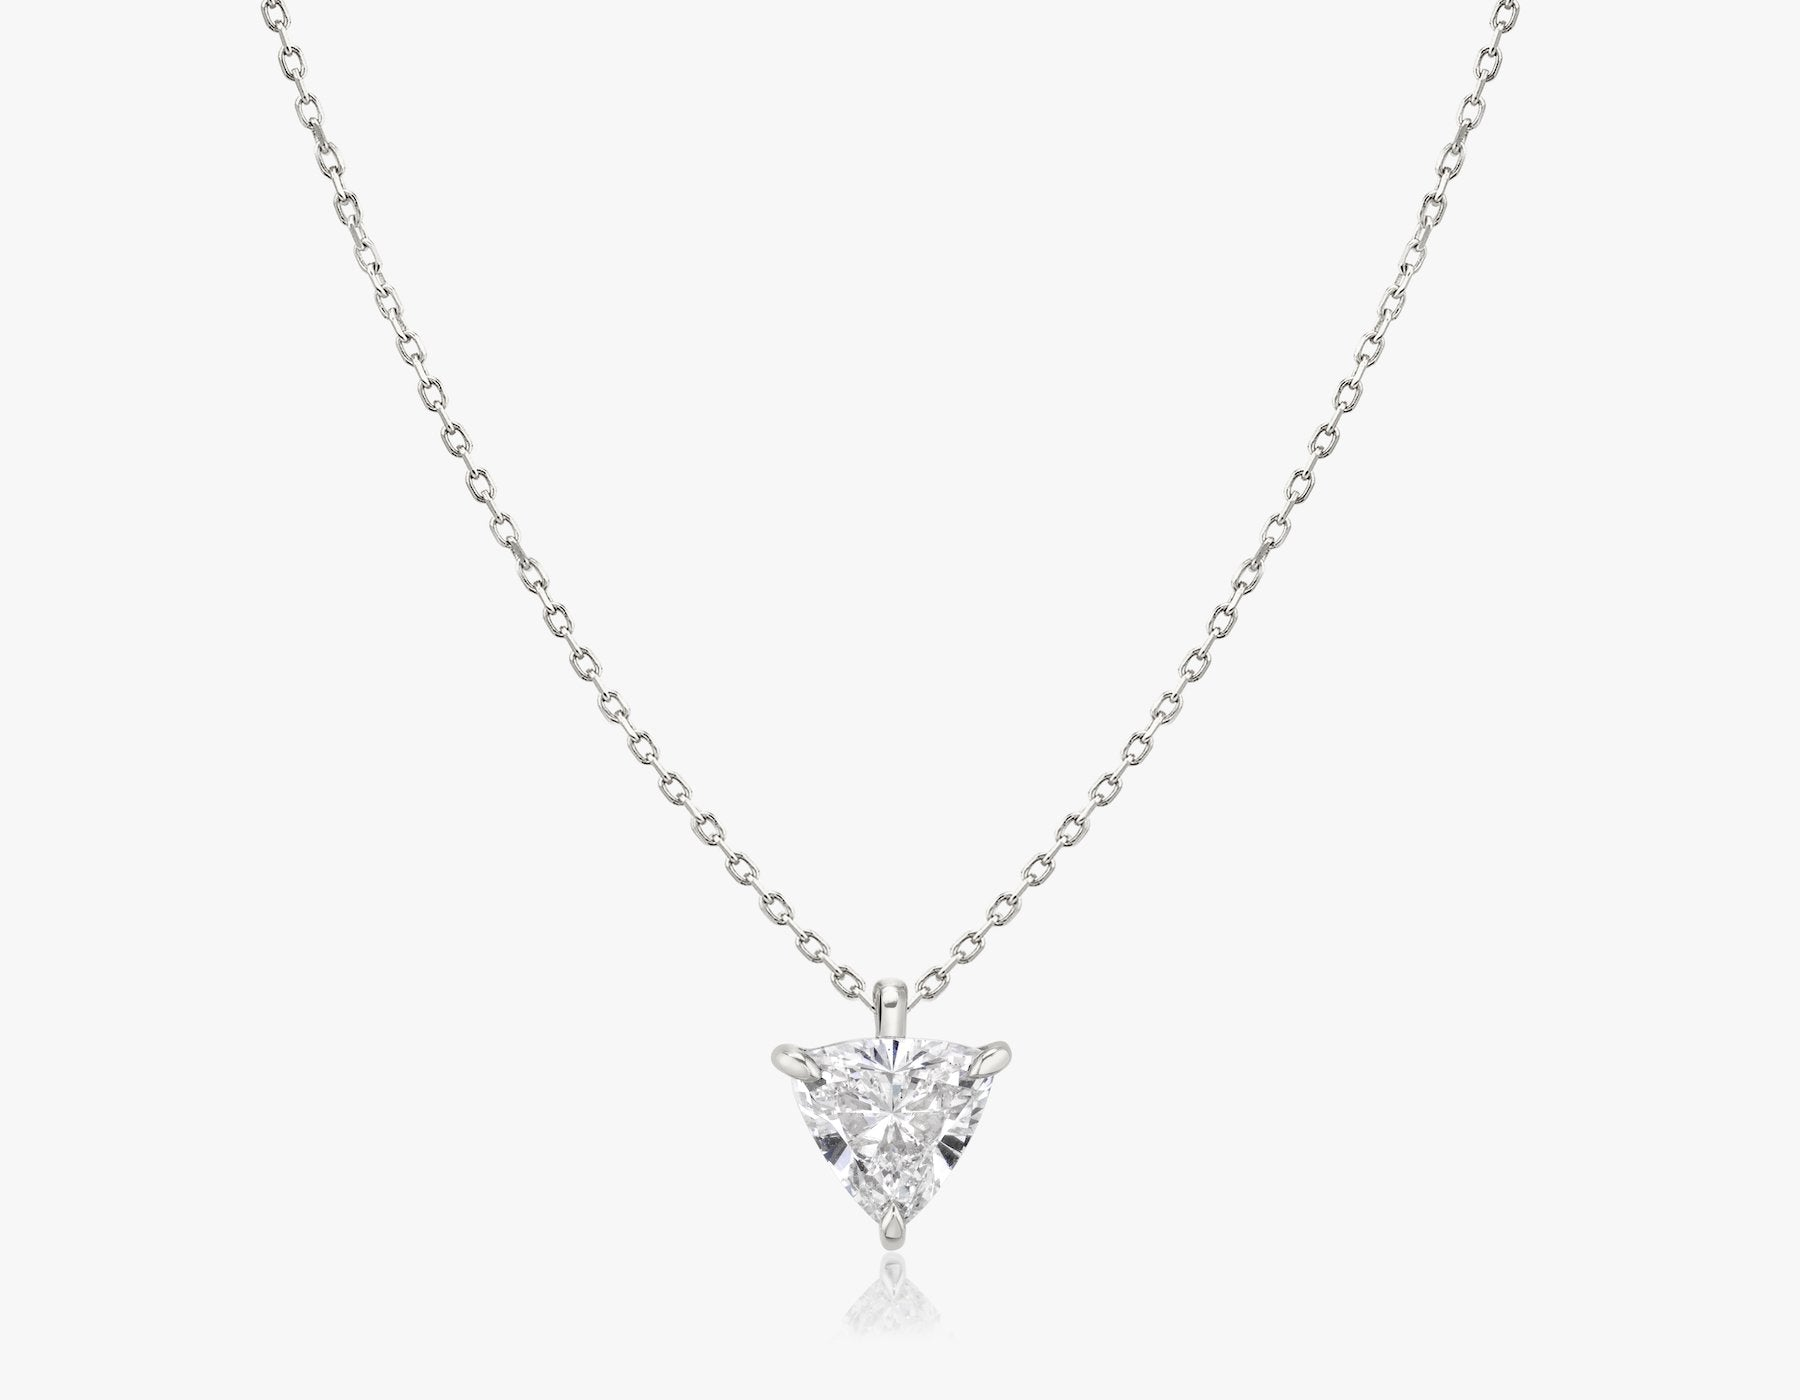 Vrai 14k solid gold Solitaire Trillion Diamond Pendant sustainably created triangle diamond prong set on simple chain necklace, 14K White Gold